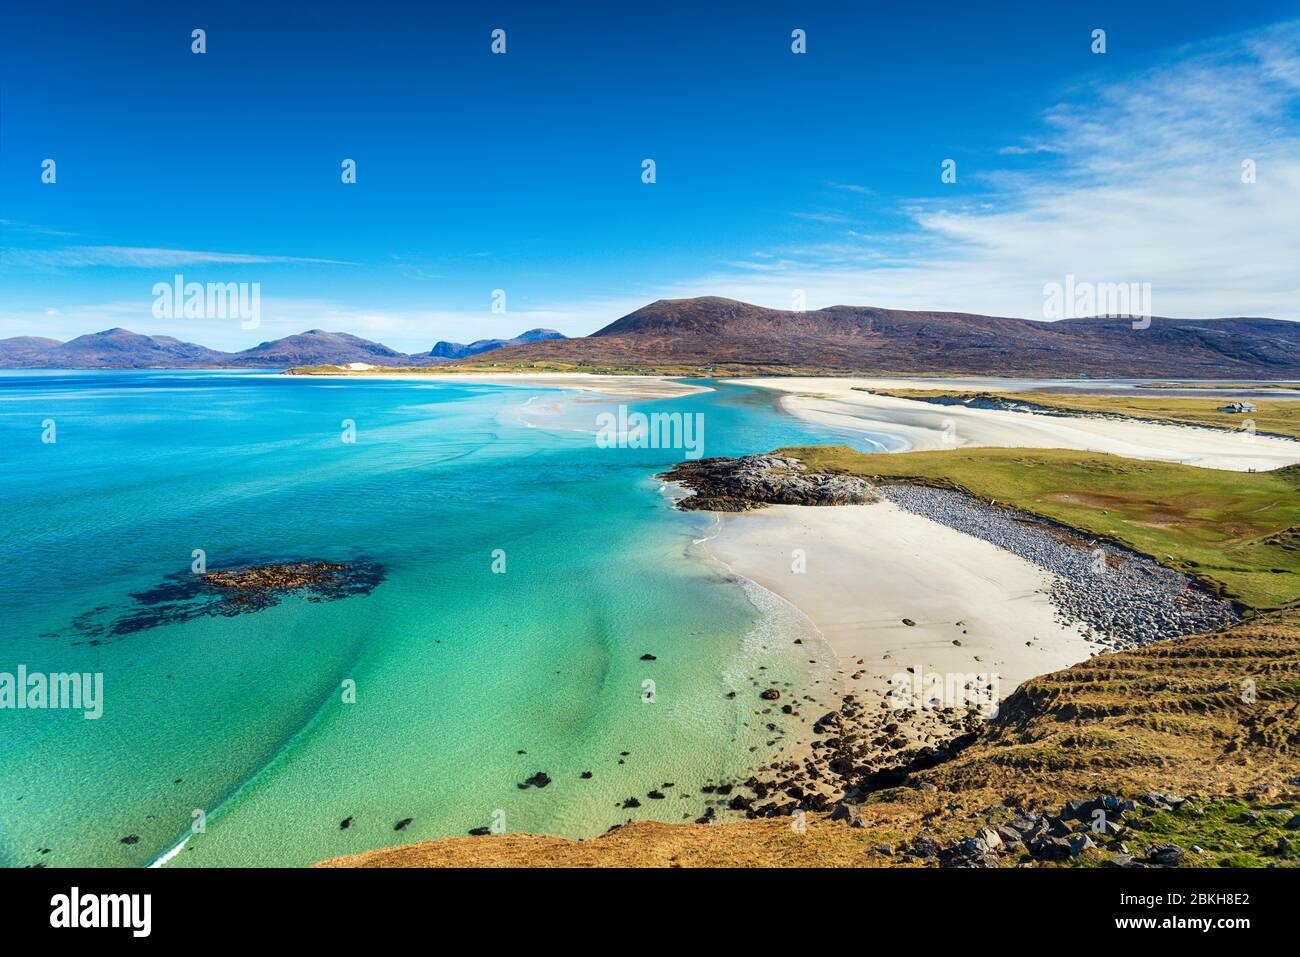 The beautiful sandy beach and clear turquoise sea at Seilebost on the isle of Harris in the Western isles of Scotland Stock Photo